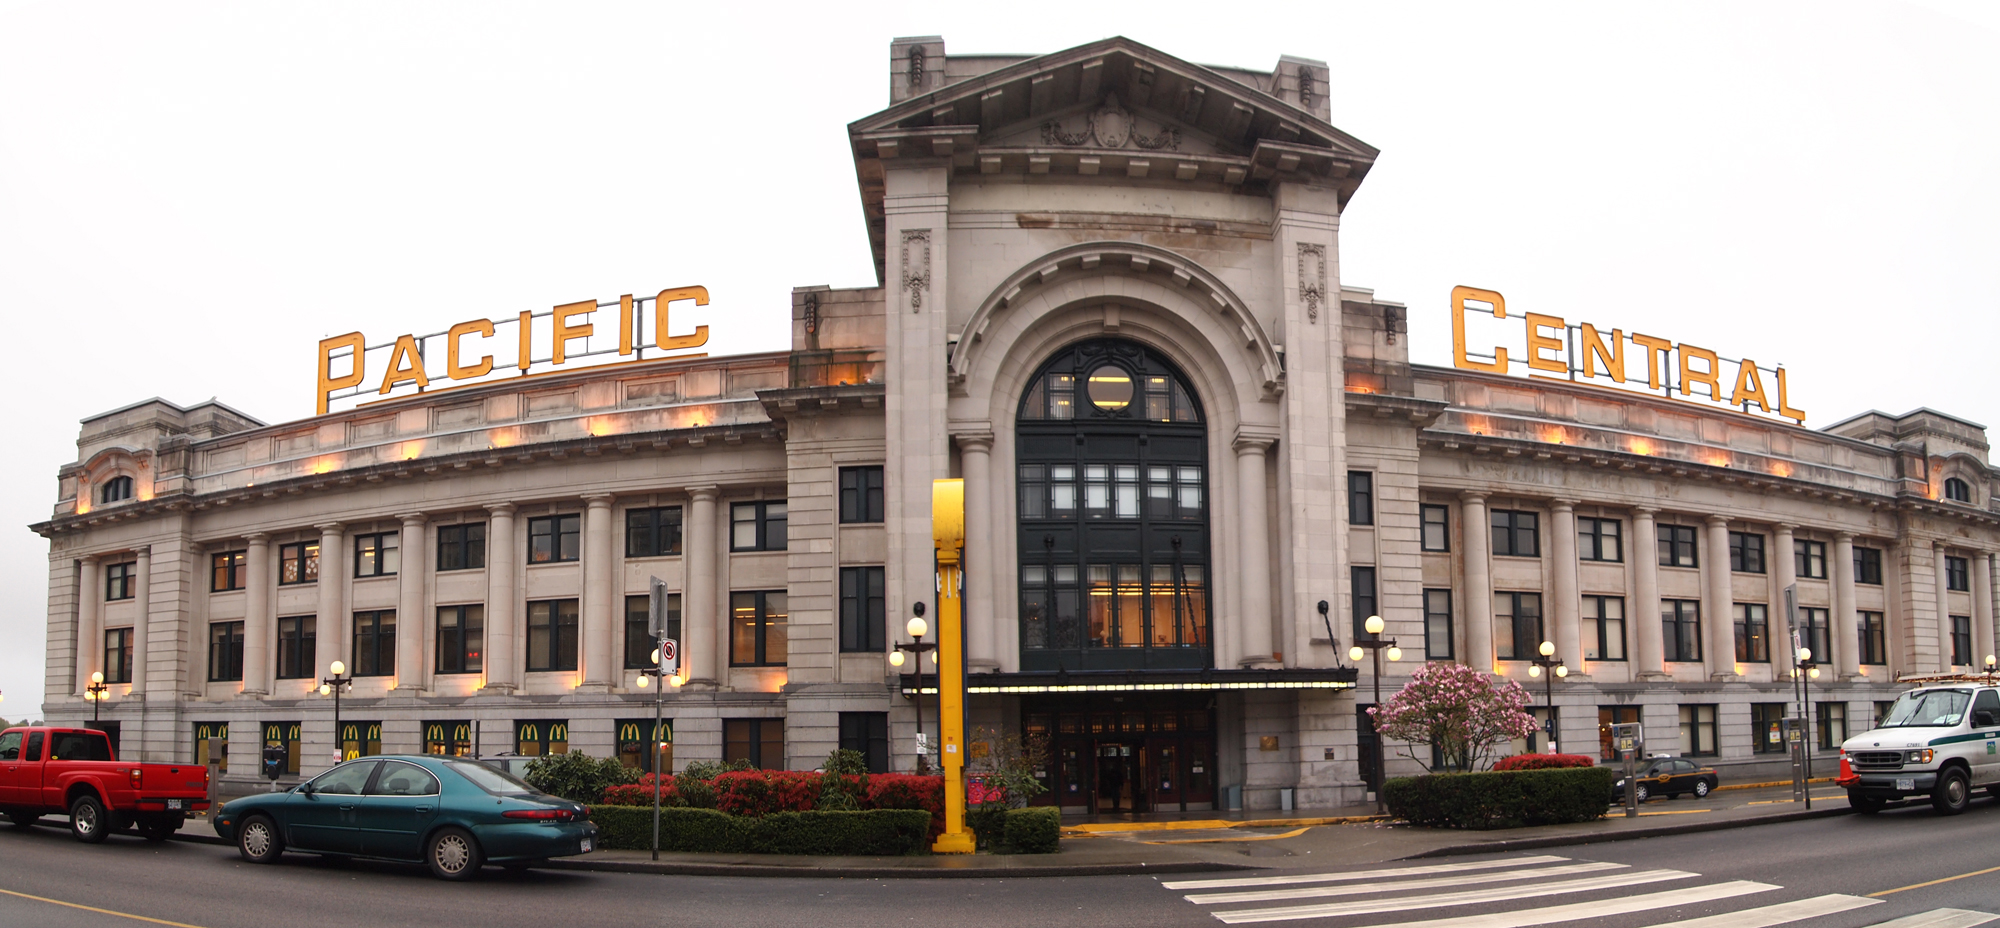 Hotels Near Pacific Central Station Vancouver